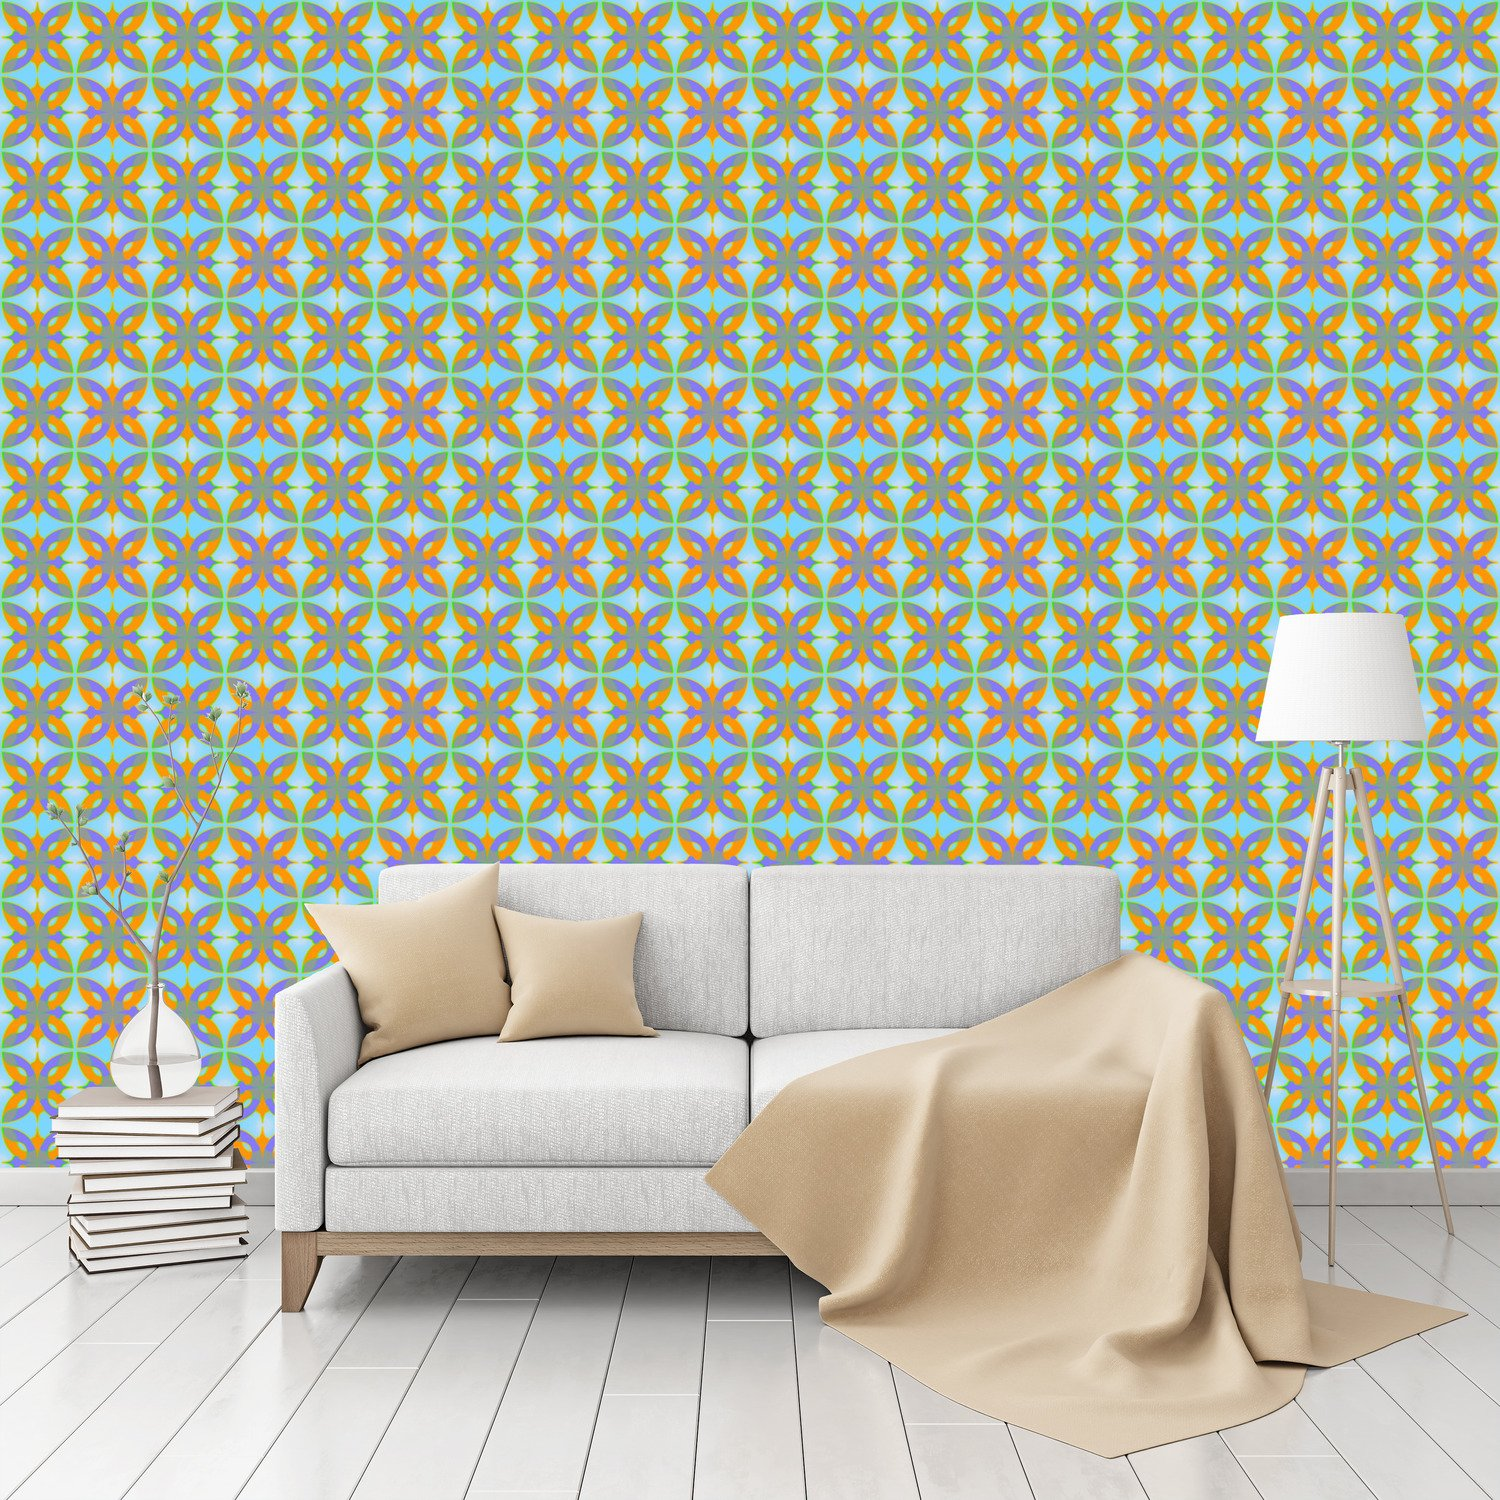 Amazon Dschingis Khan Patterned Peel Stick Textured壁紙by